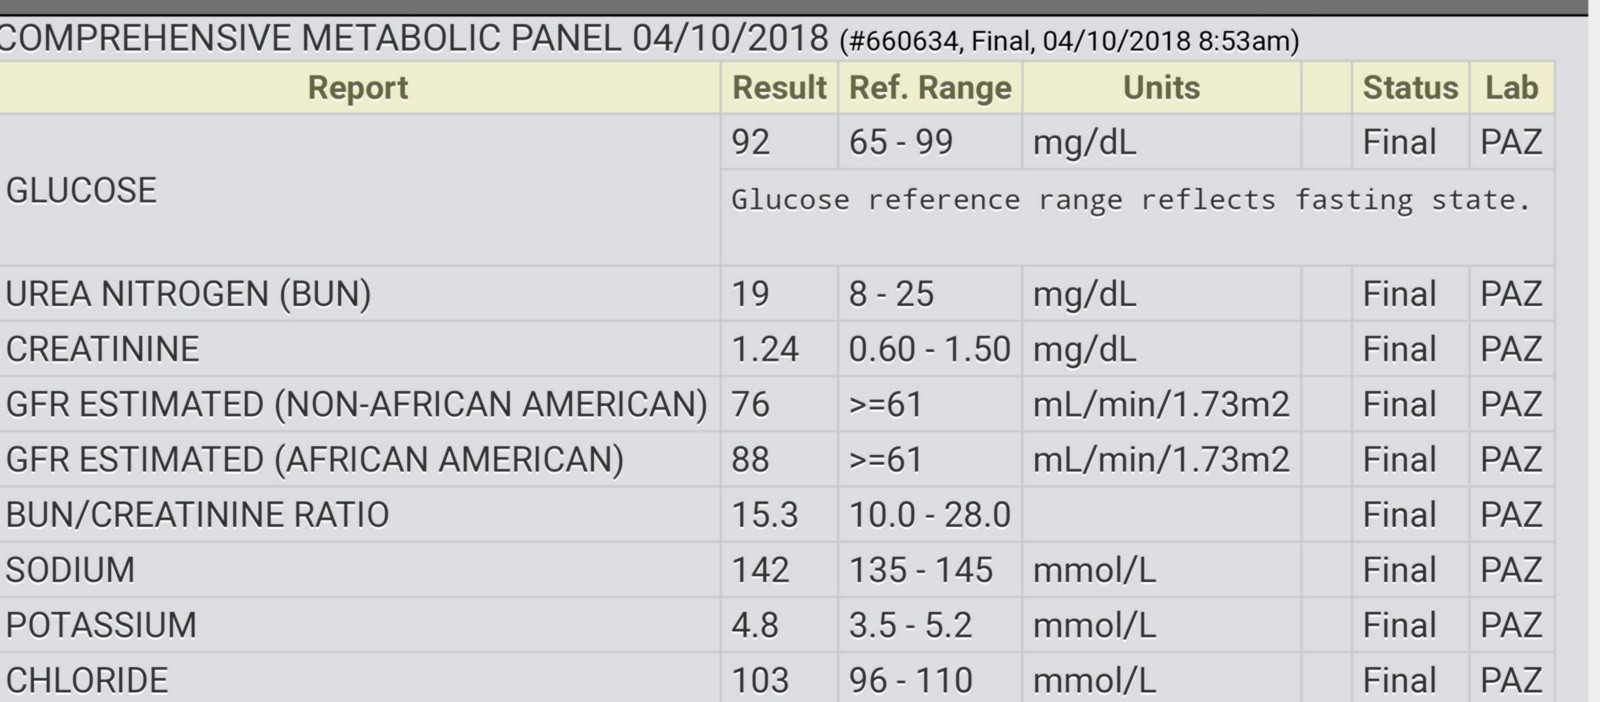 Basic Metabolic Panel Results Gfr | Healthy HesongBai